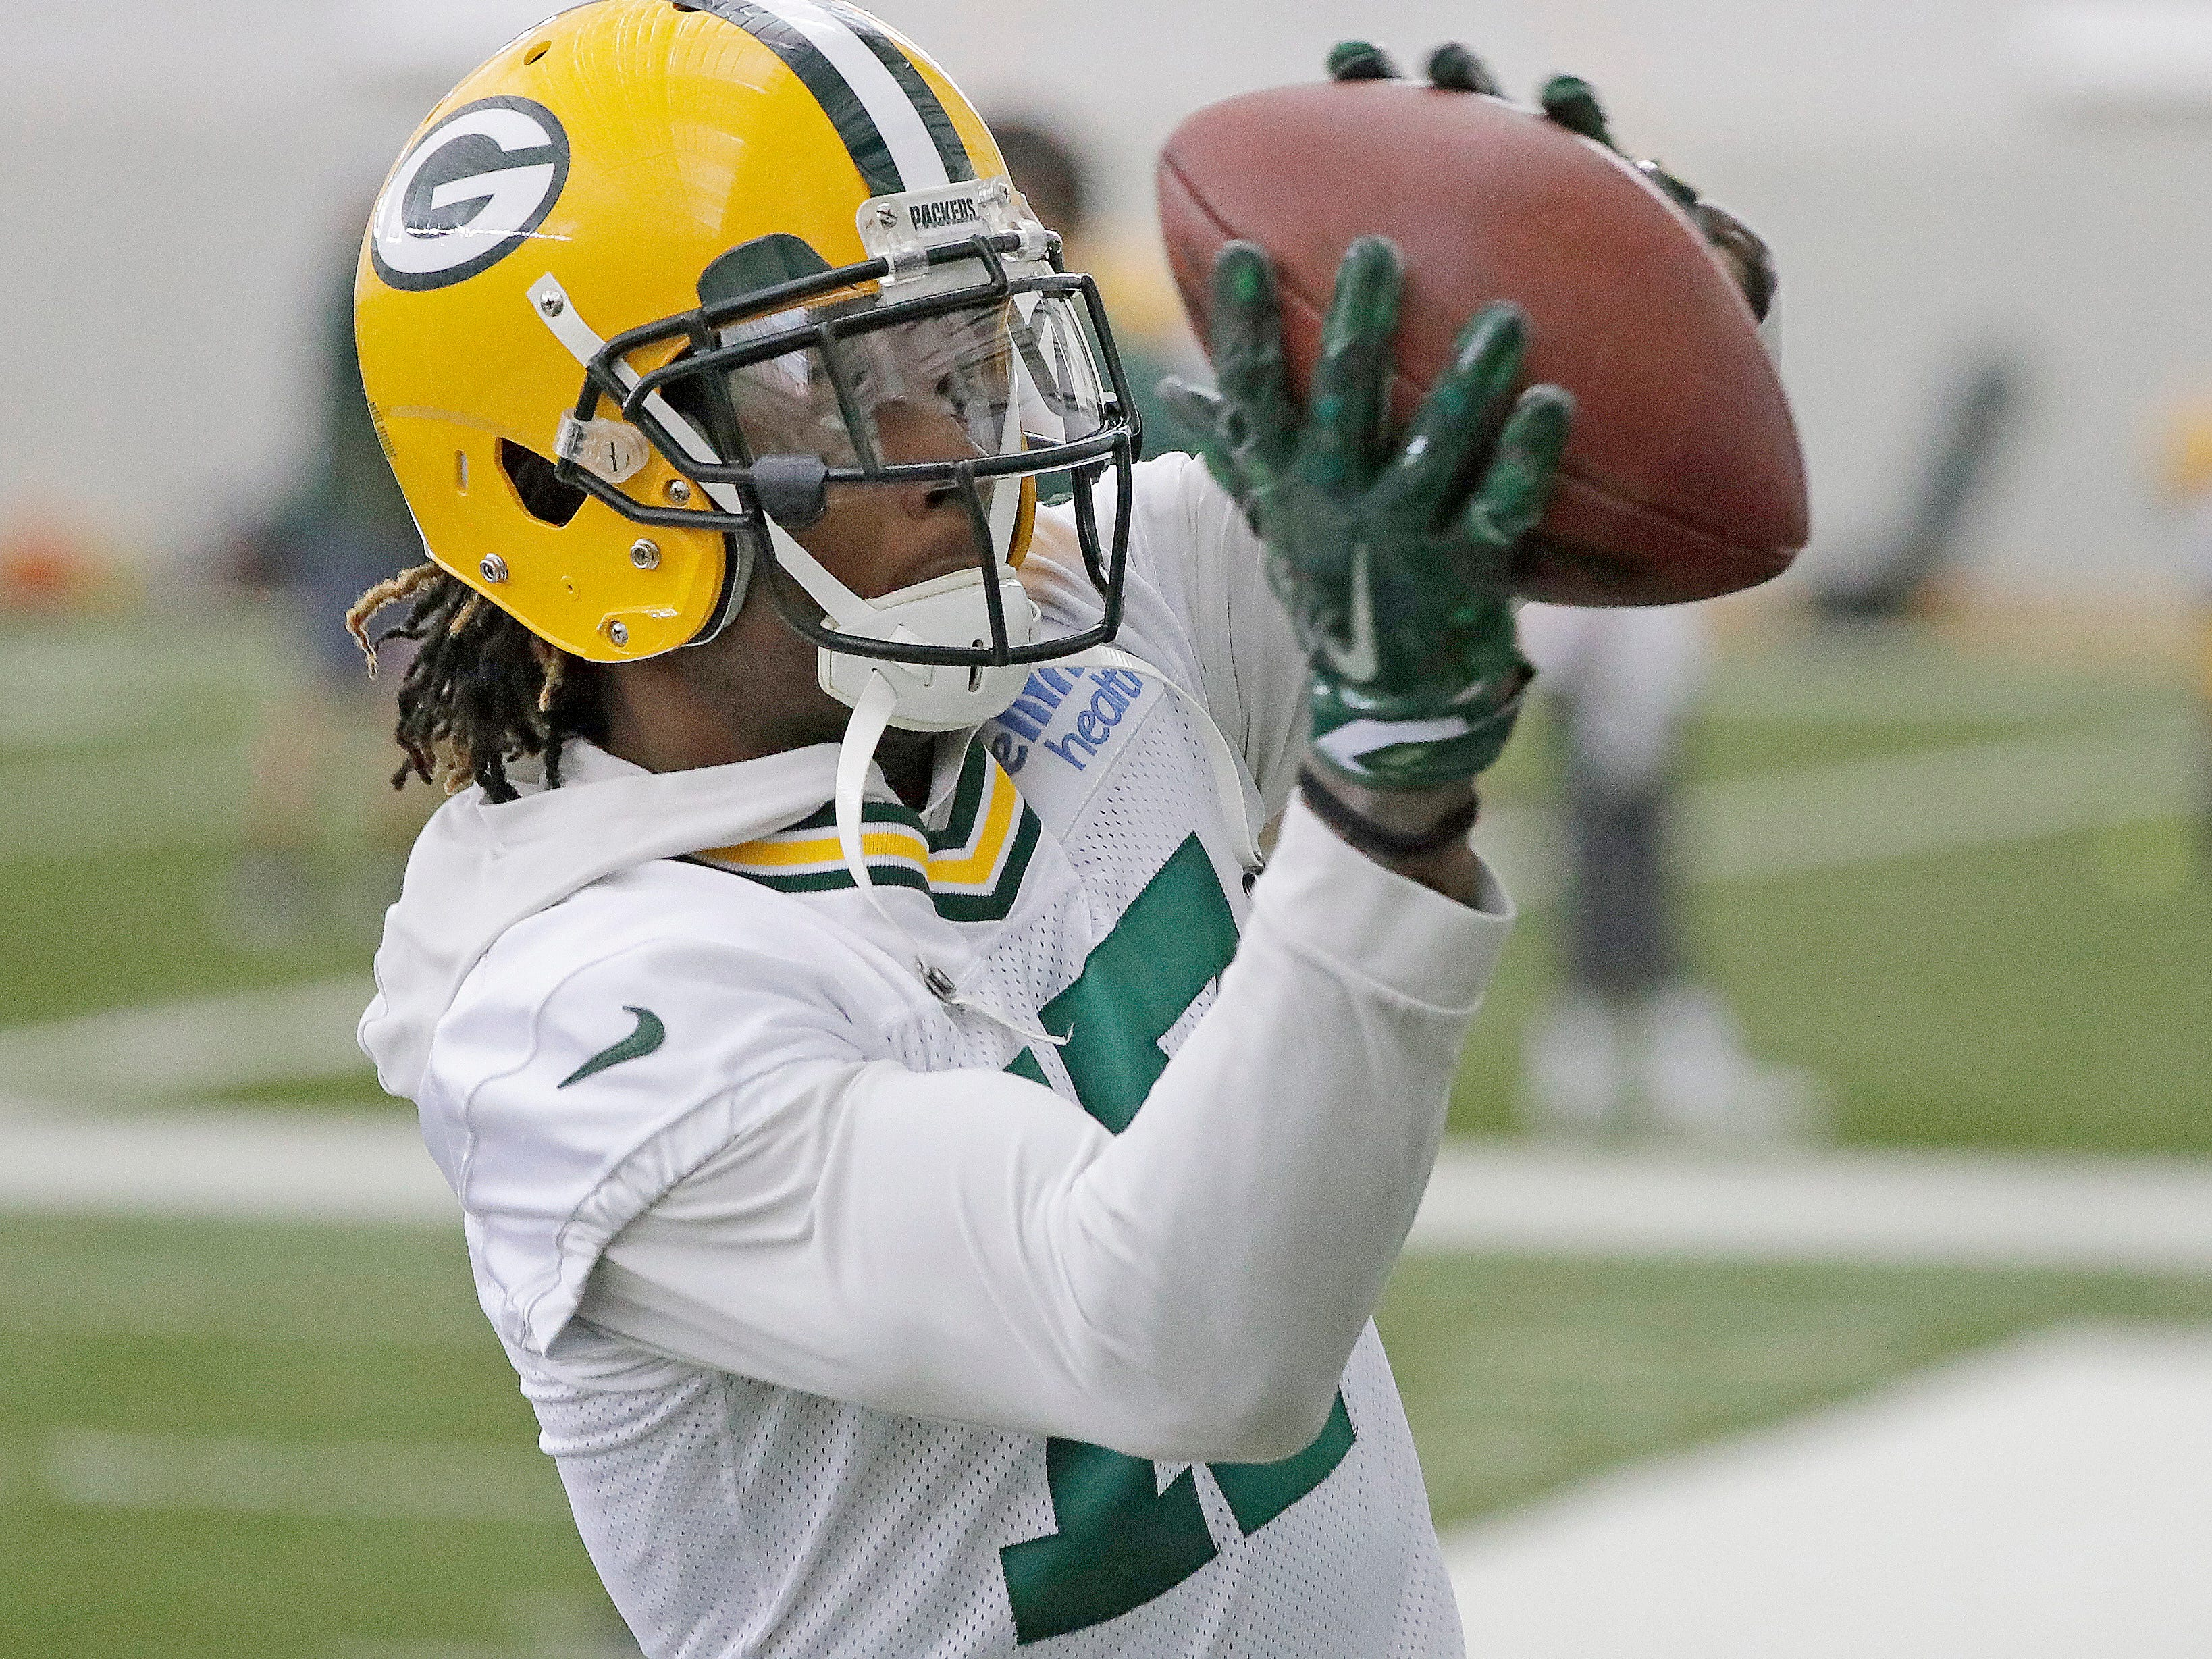 Green Bay Packers wide receiver Davante Adams (17) during ball drills during practice Wednesday, November 7, 2018 at the Don Hutson Center in Ashwaubenon, Wis.